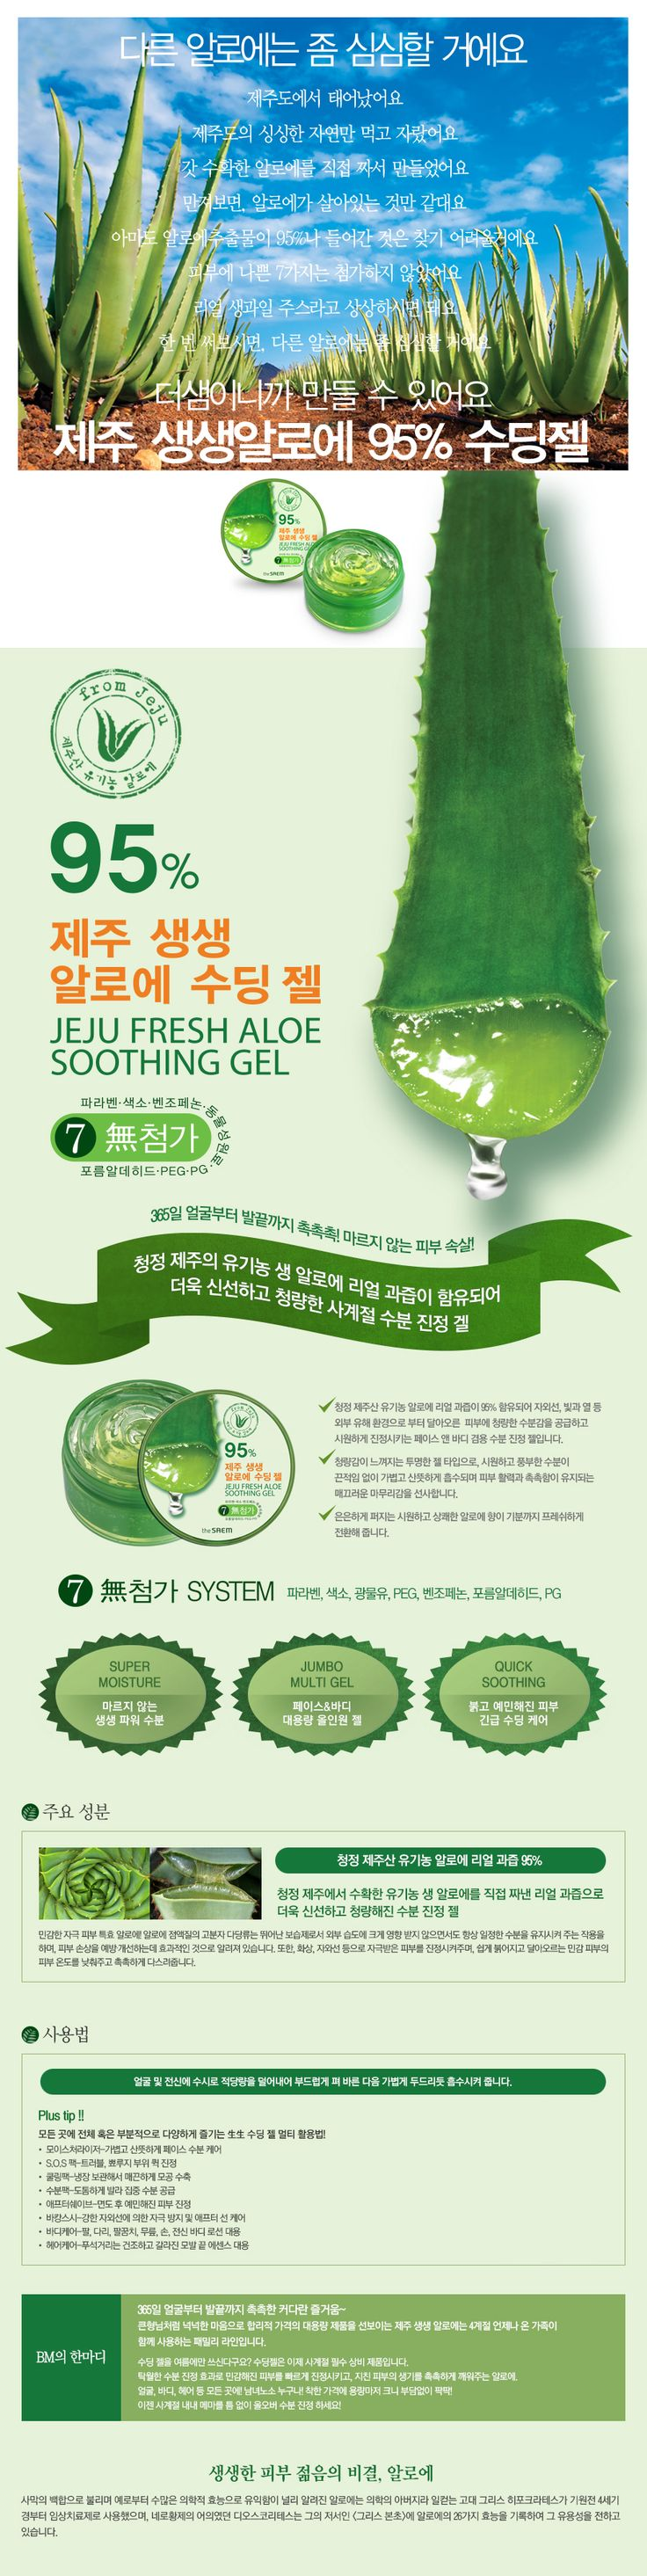 The Saem Jeju Fresh Aloe Soothing Gel 95% | The Cutest Makeup